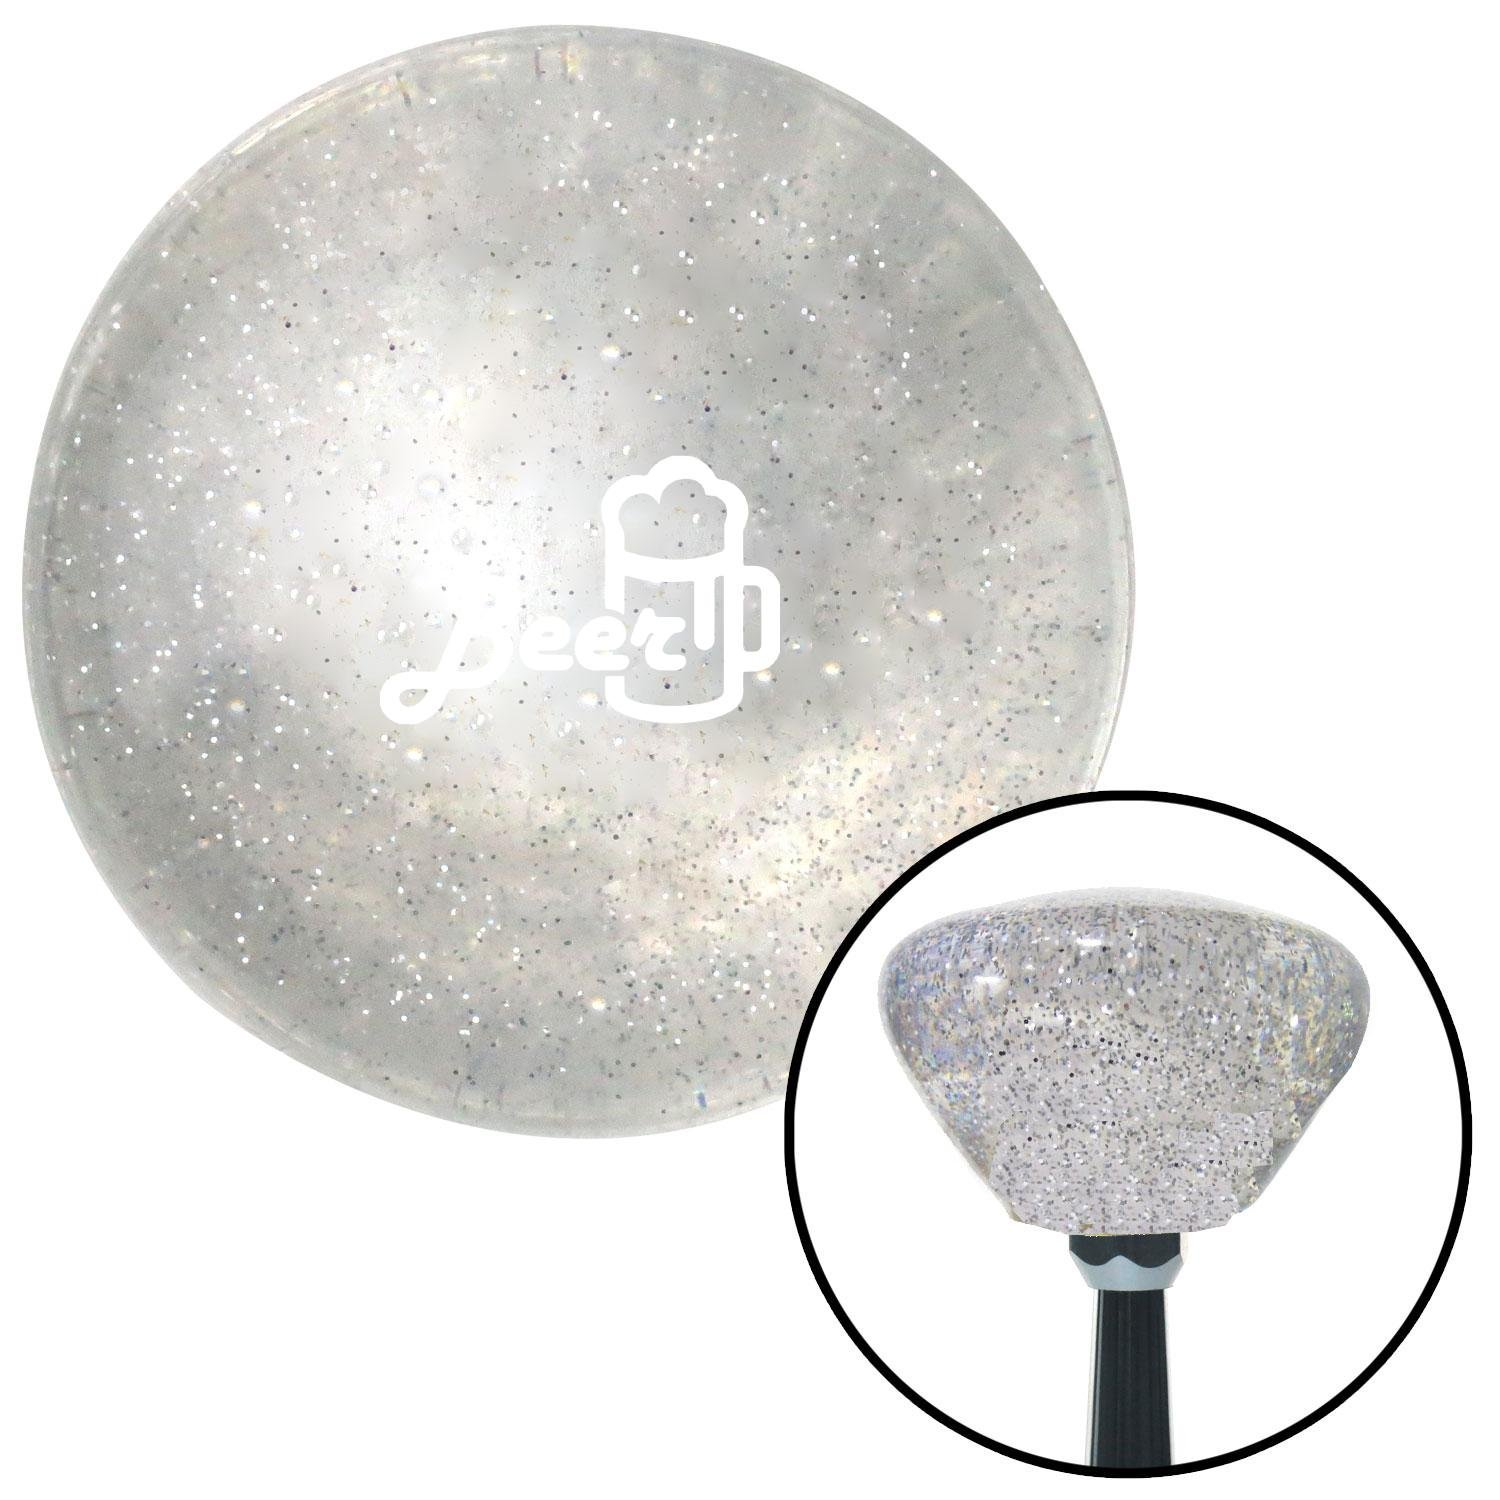 American Shifter 286214 Shift Knob White Beer and Mug Clear Retro Metal Flake with M16 x 1.5 Insert